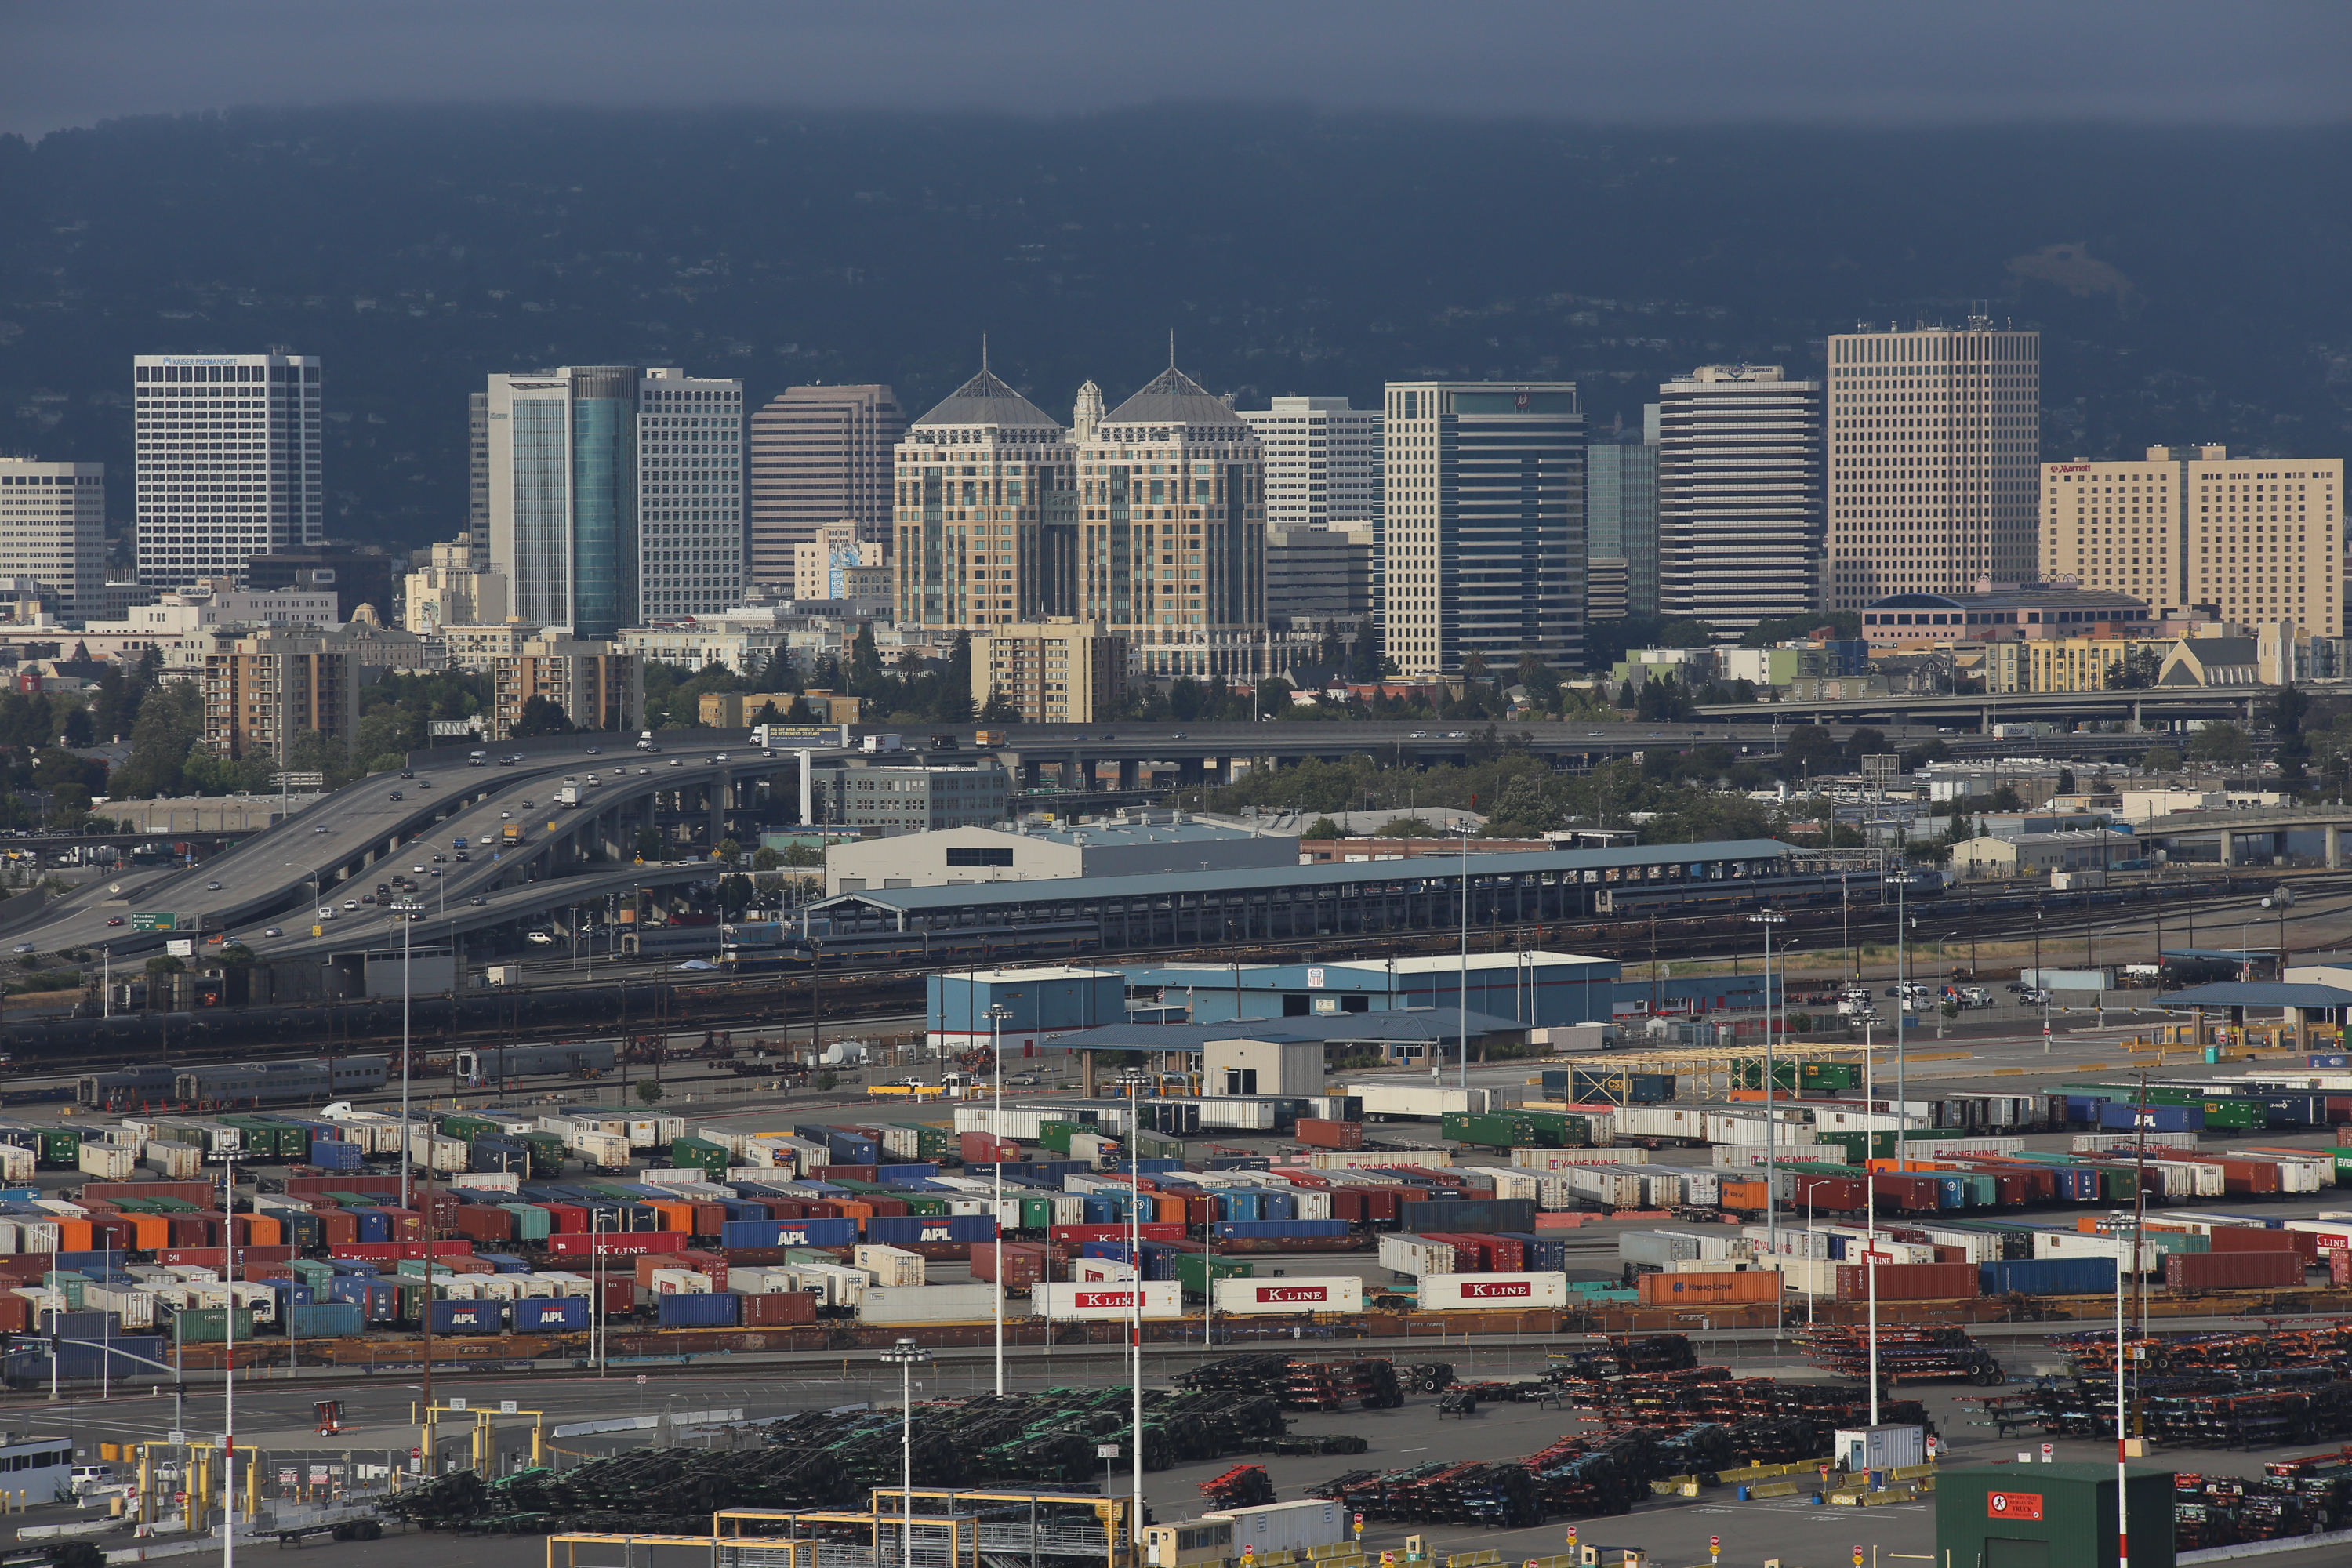 Part of the Port of Oakland's intermodal container transfer facility is visible in this photograph. (Photo: Port of Oakland)